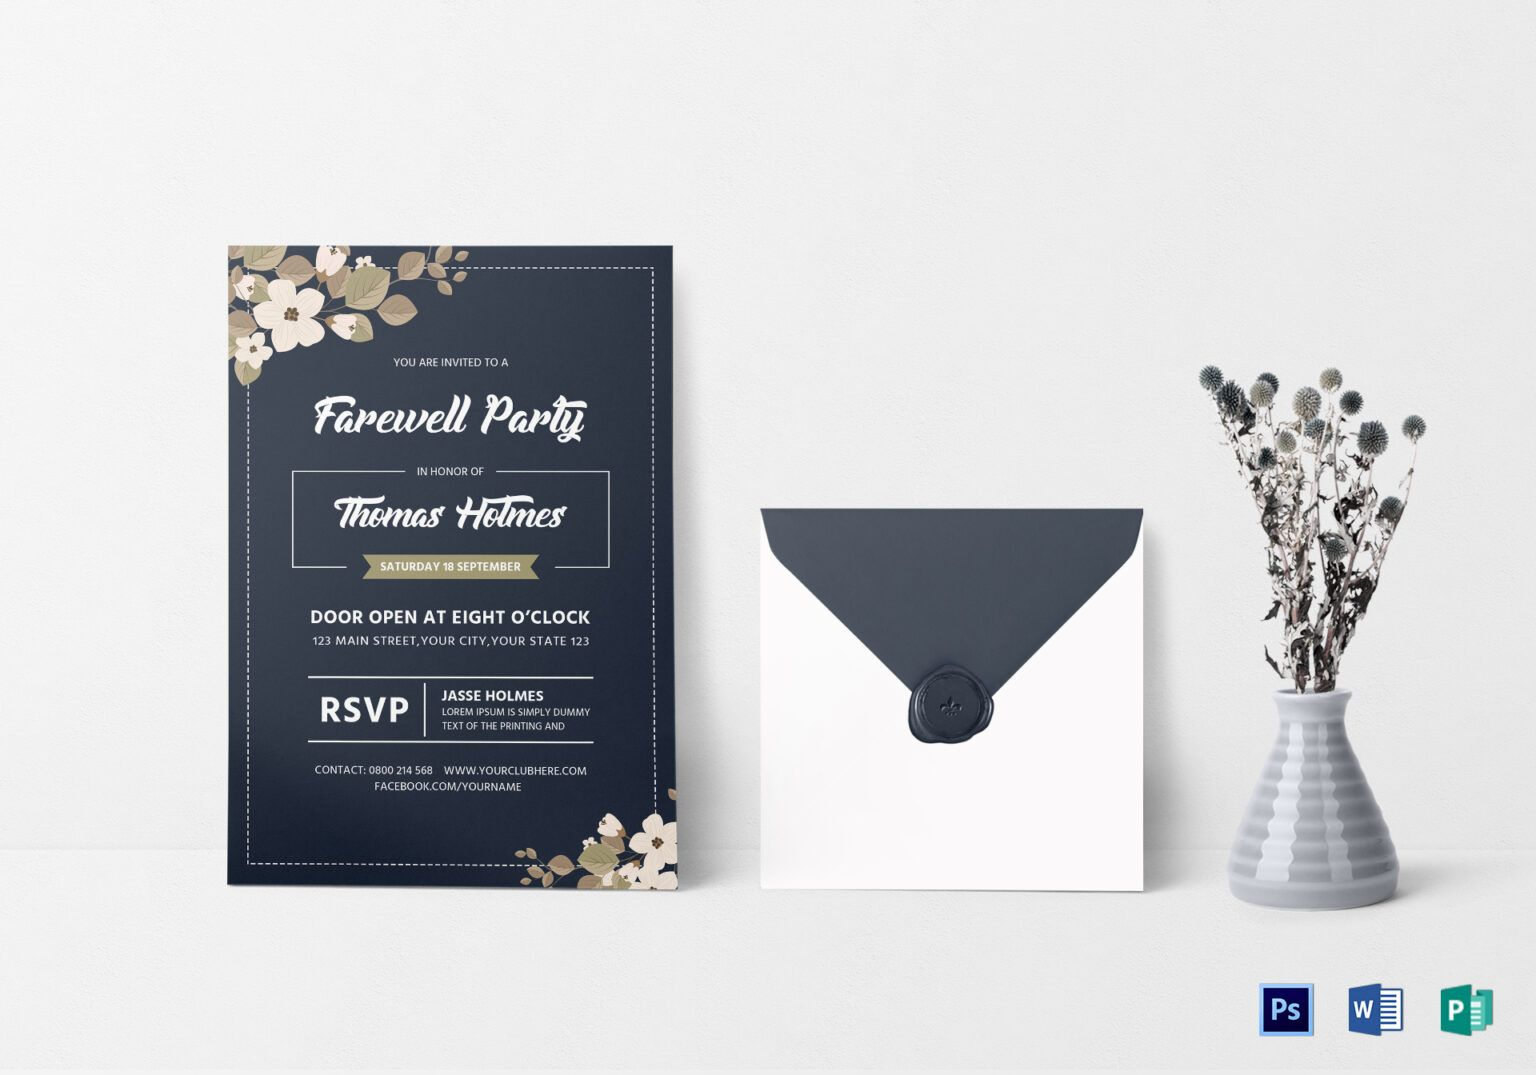 Farewell Party Invitation Card Template With Regard To Farewell Invitation Card Temp In 2020 Farewell Invitation Card Farewell Party Invitations Invitation Card Design